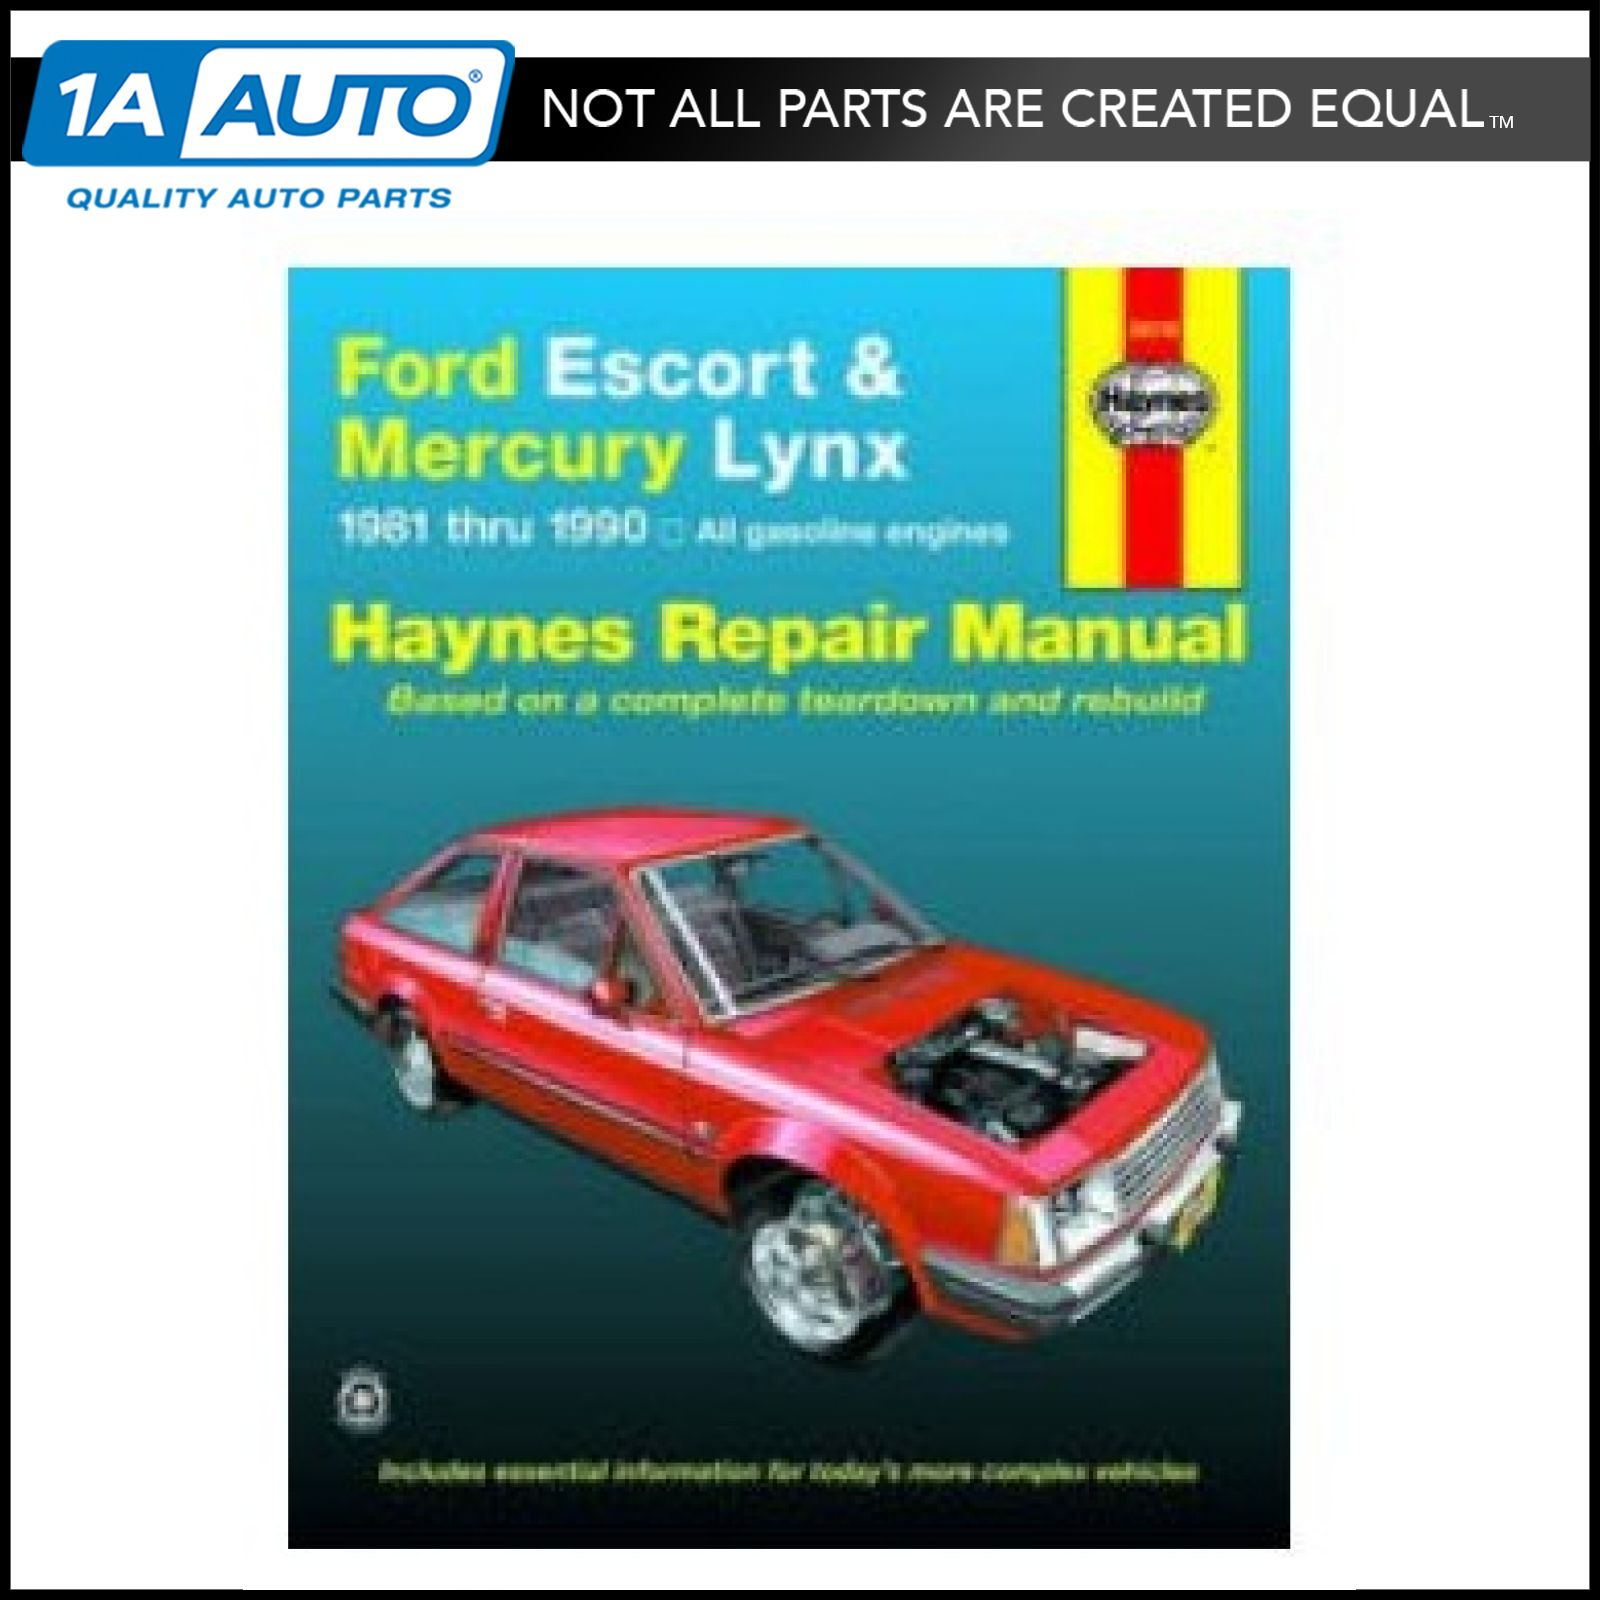 Escort auto repair help have found